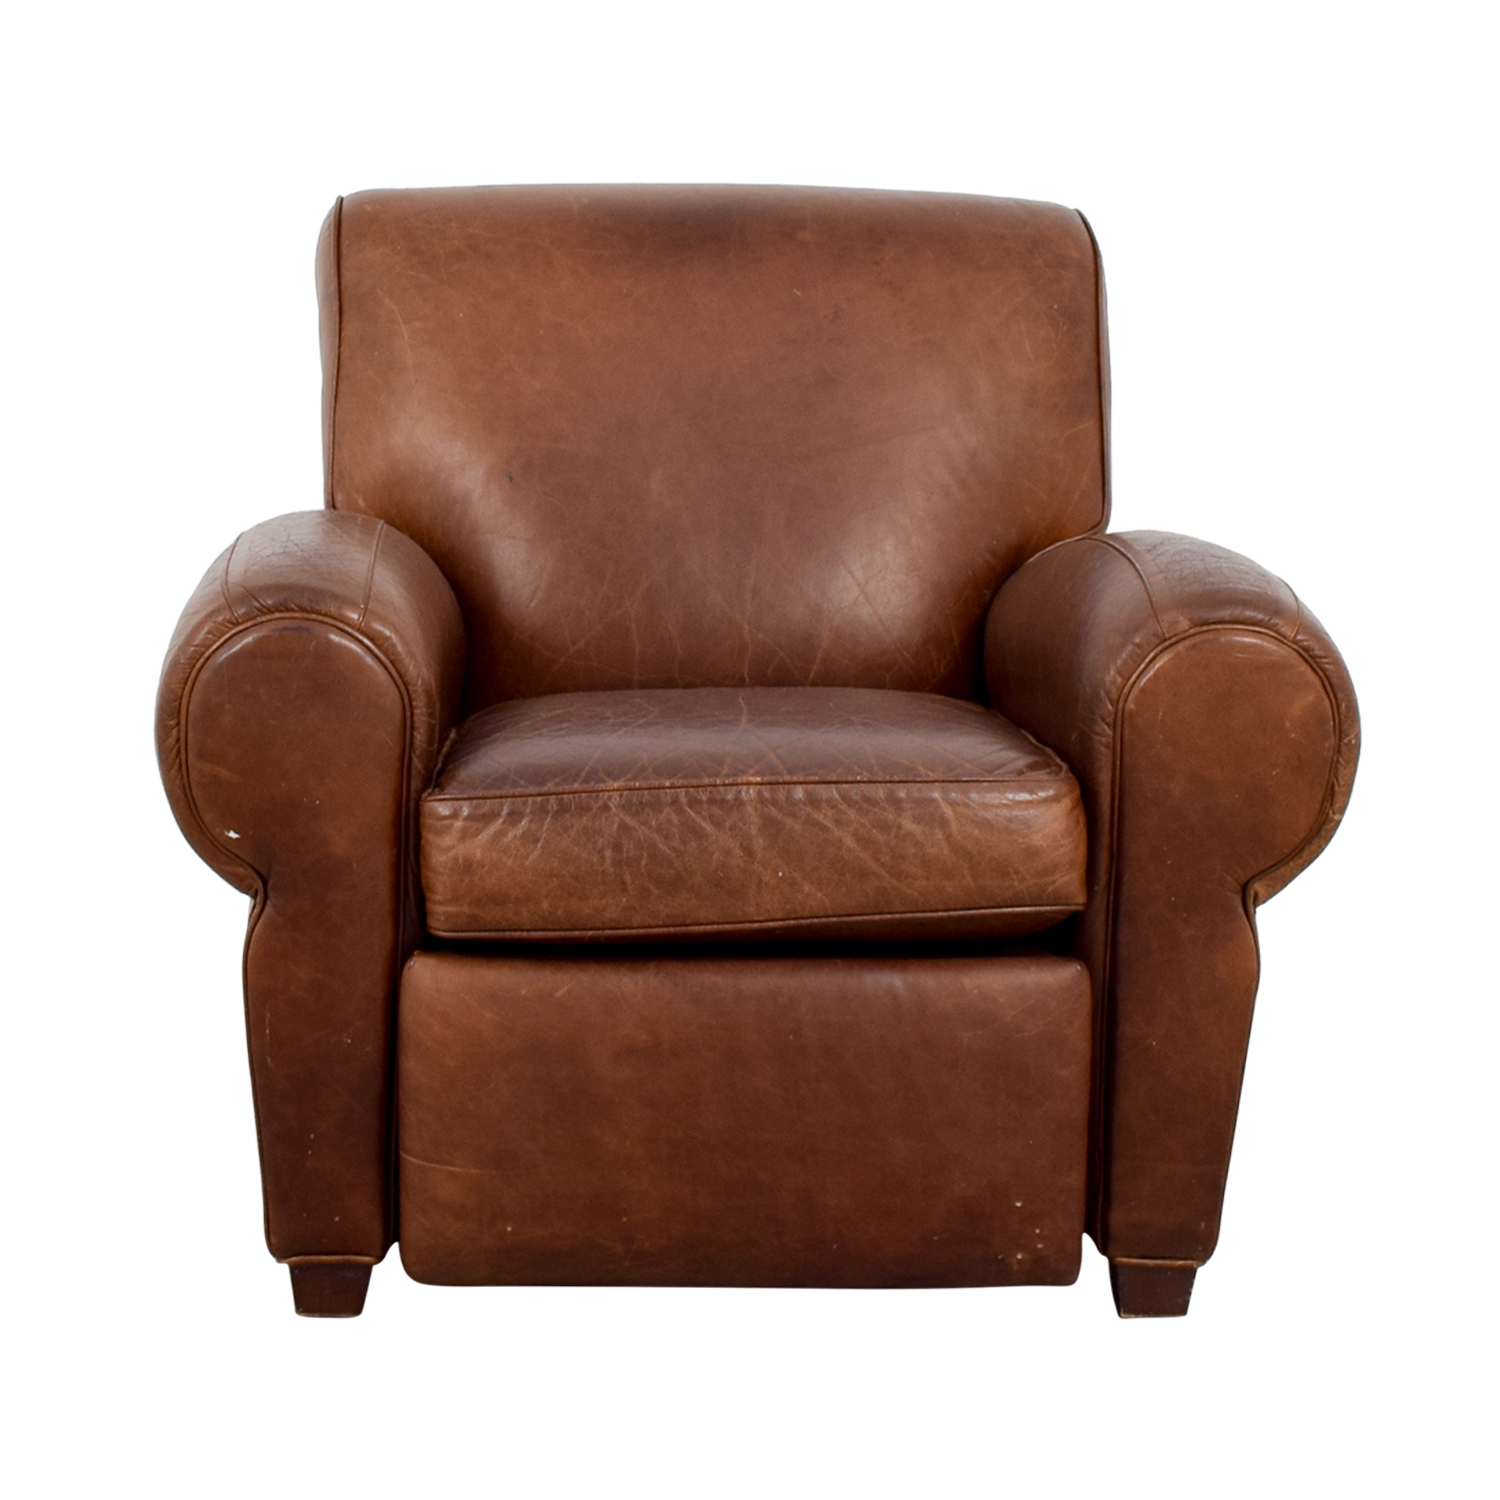 Pottery Barn Pottery Barn Manhattan Brown Leather Club Chair Chairs